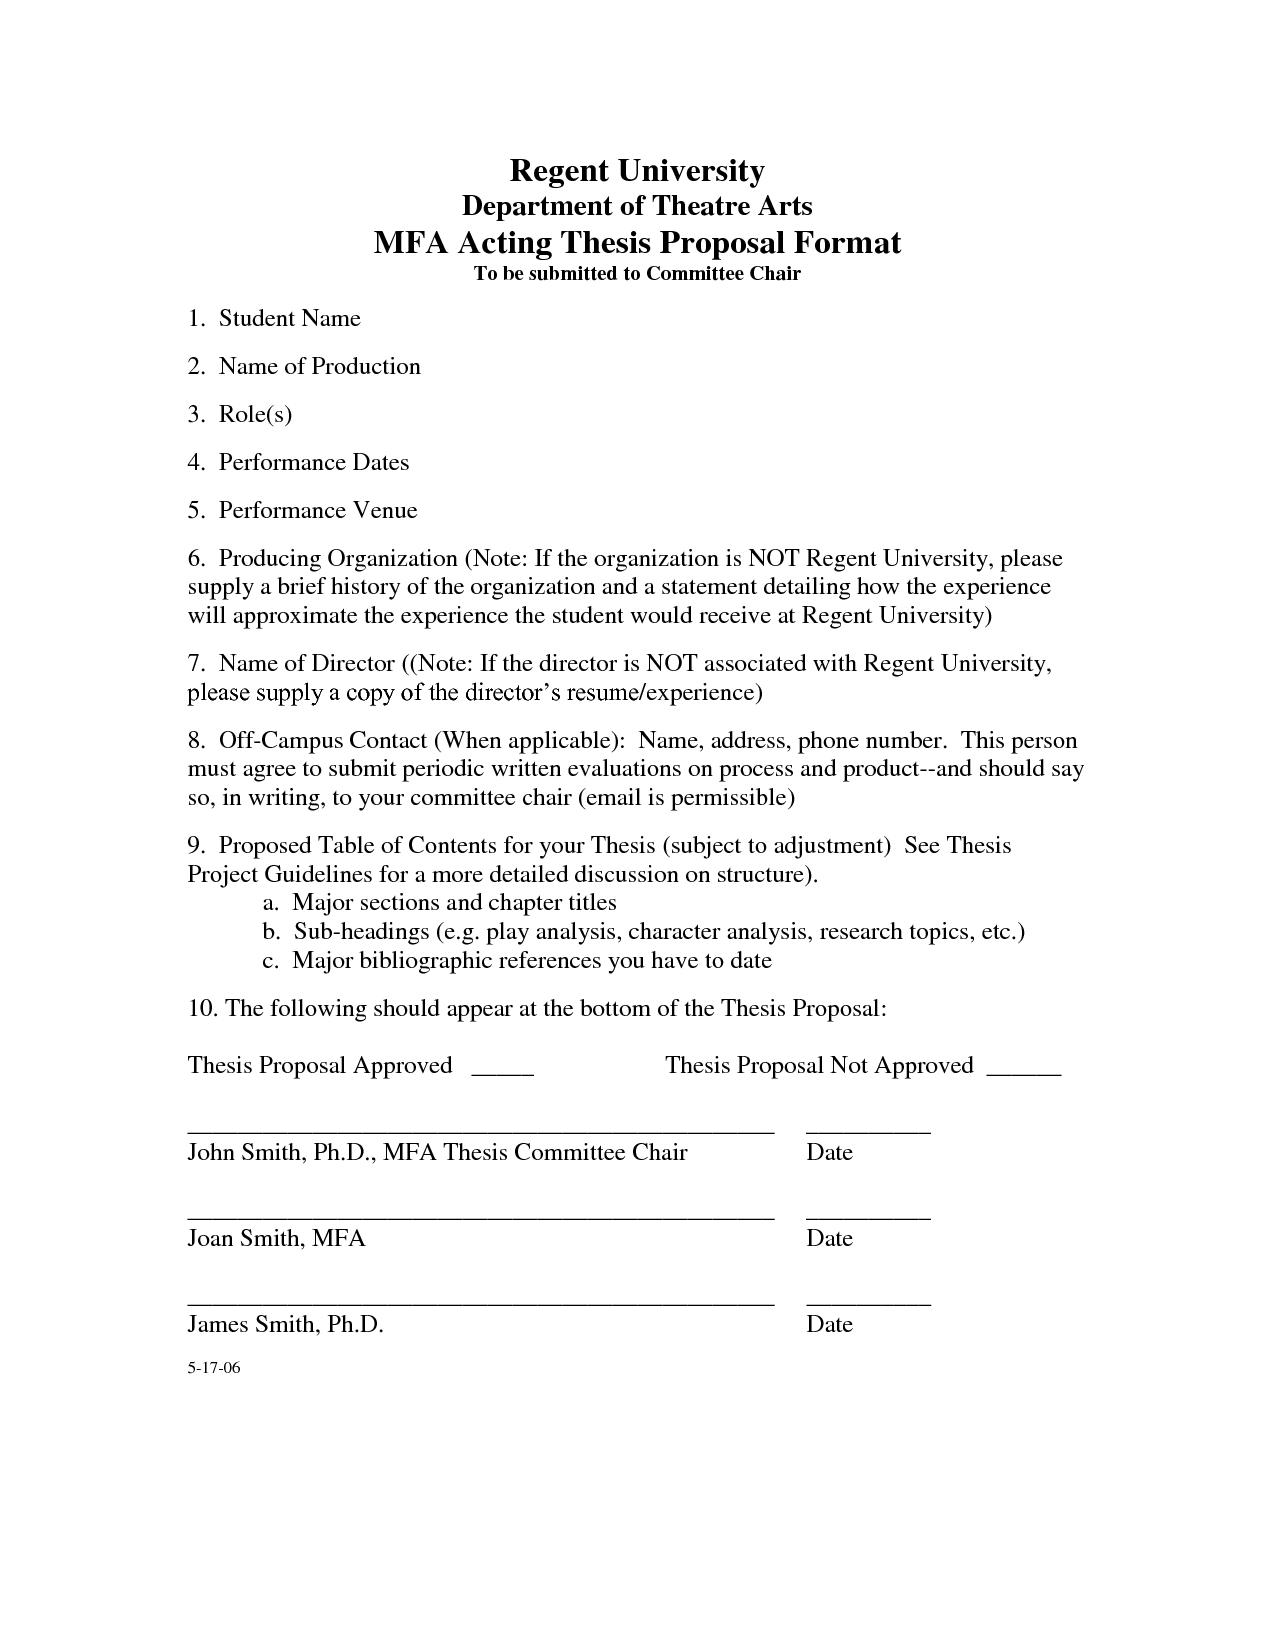 Dissertation proposal virginia